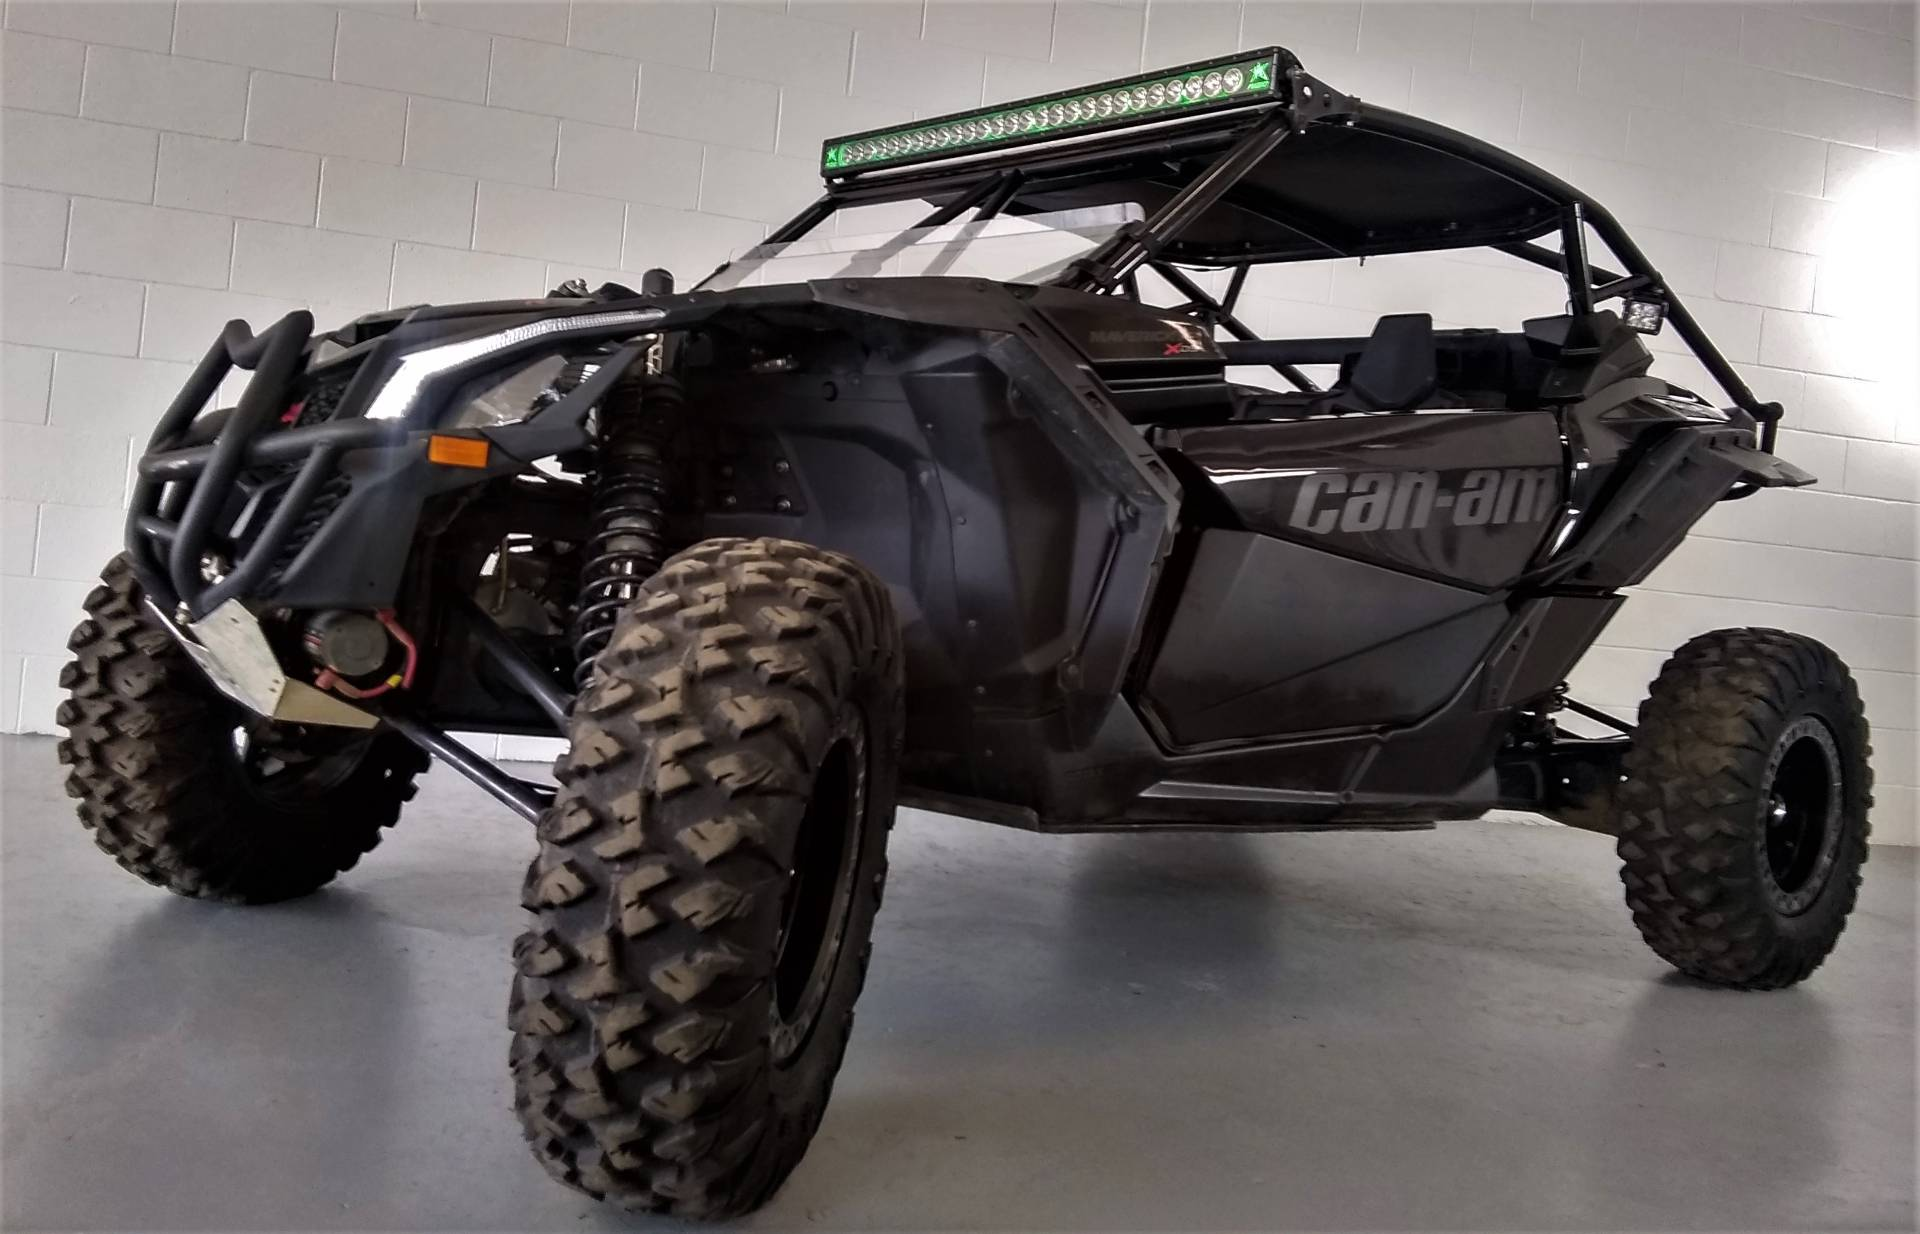 2017 Can-Am Maverick X3 X ds Turbo R in Stillwater, Oklahoma - Photo 6